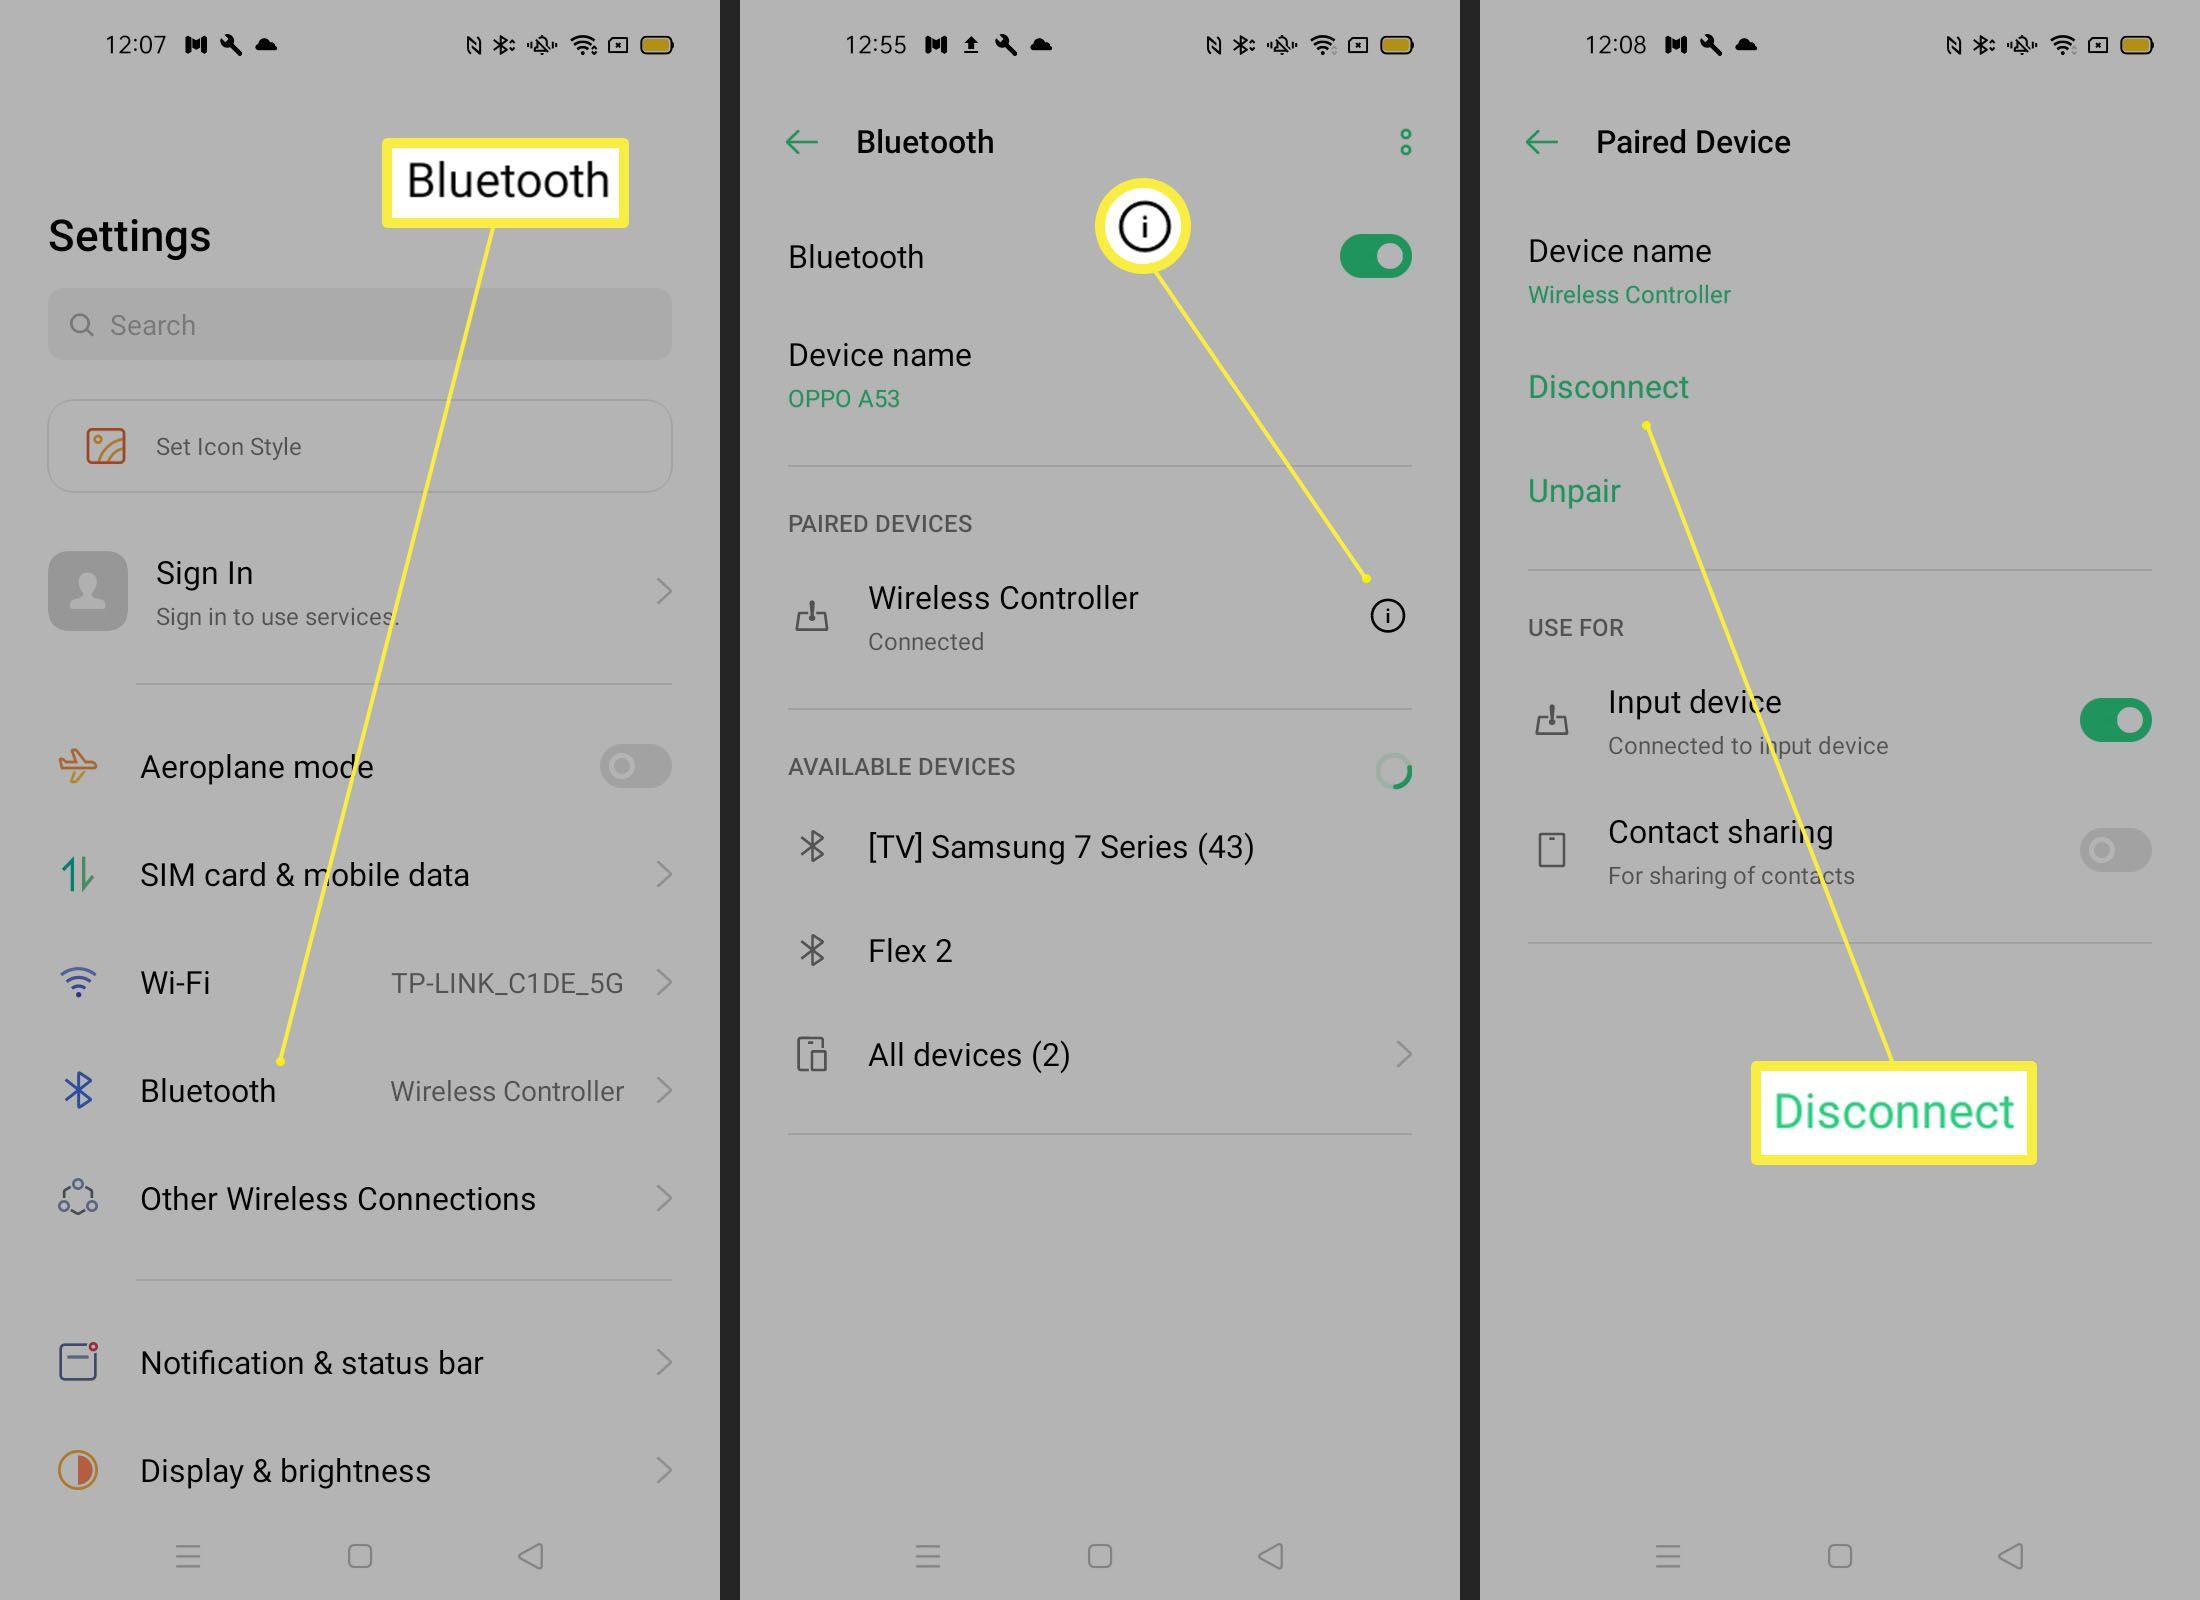 Steps needed to disconnect a controller on an Android phone